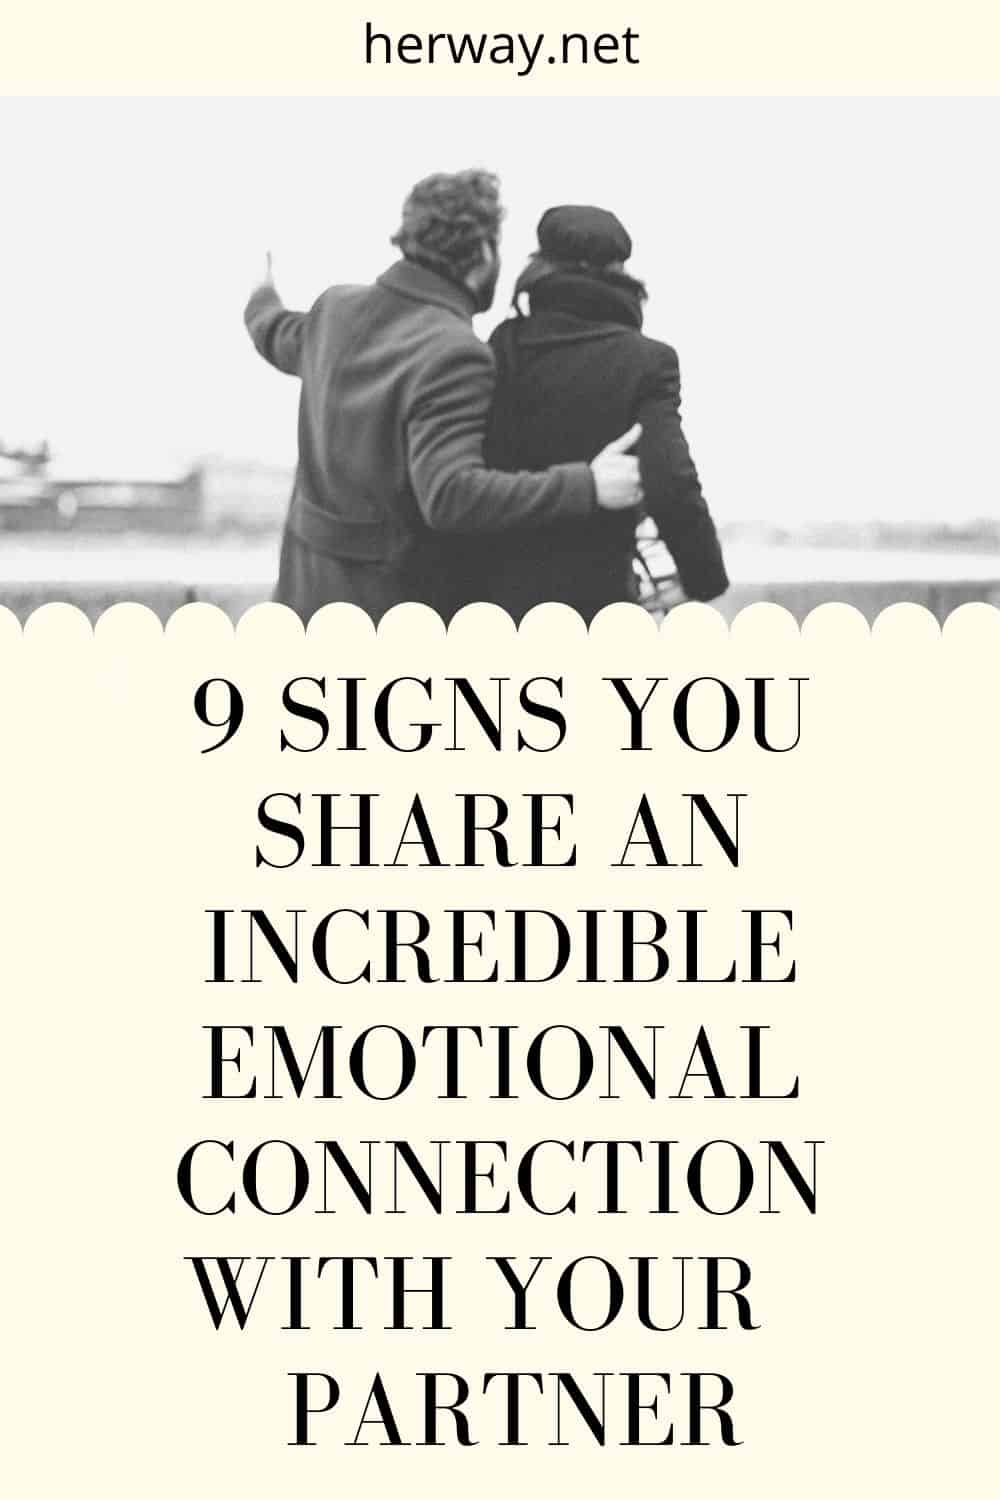 9 Signs You Share An Incredible Emotional Connection With Your Partner